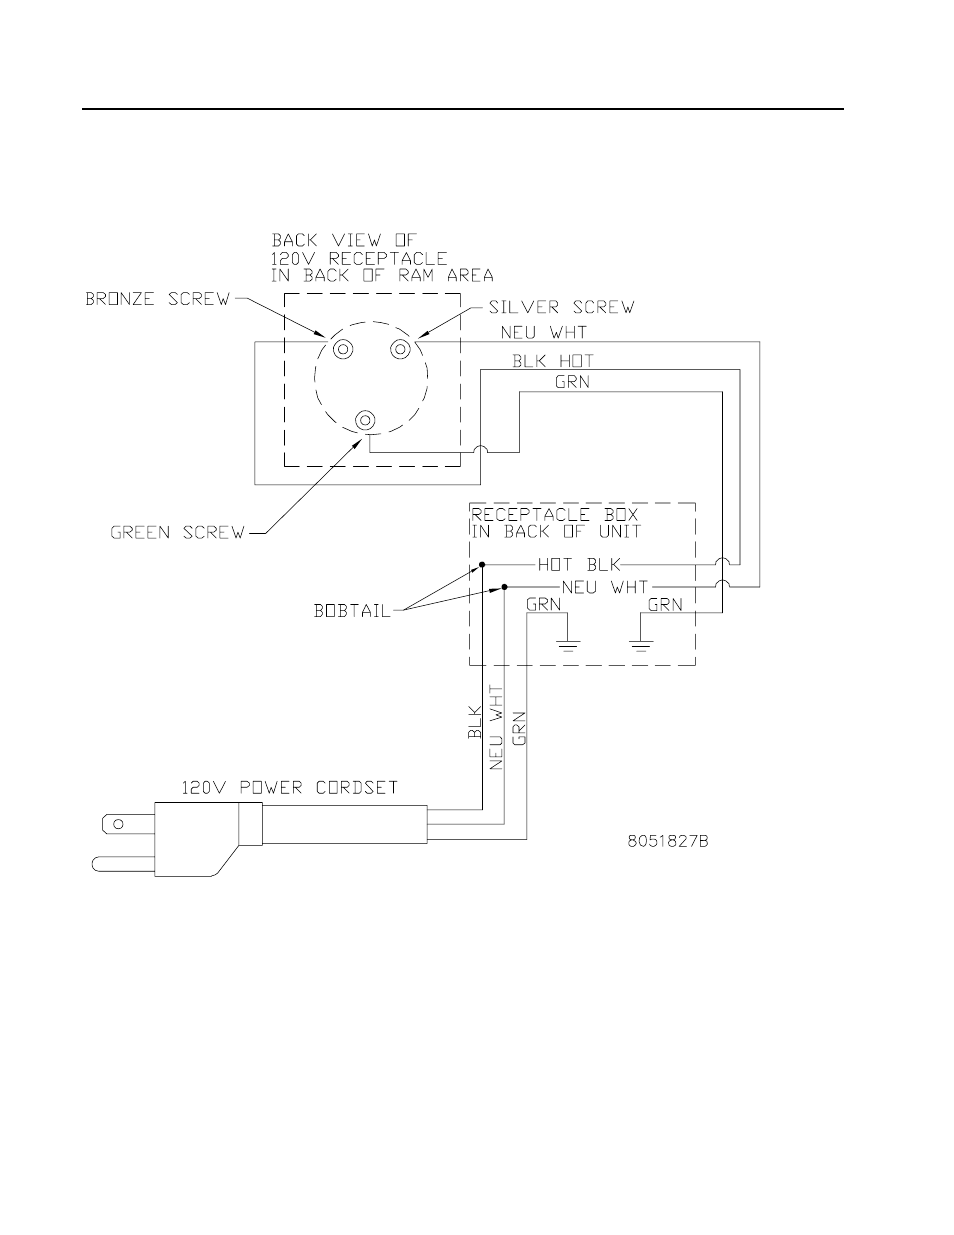 6 wiring diagram ram units only frymaster bk1814 user manual rh manualsdir com Frymaster Parts Diagram Frymaster Parts